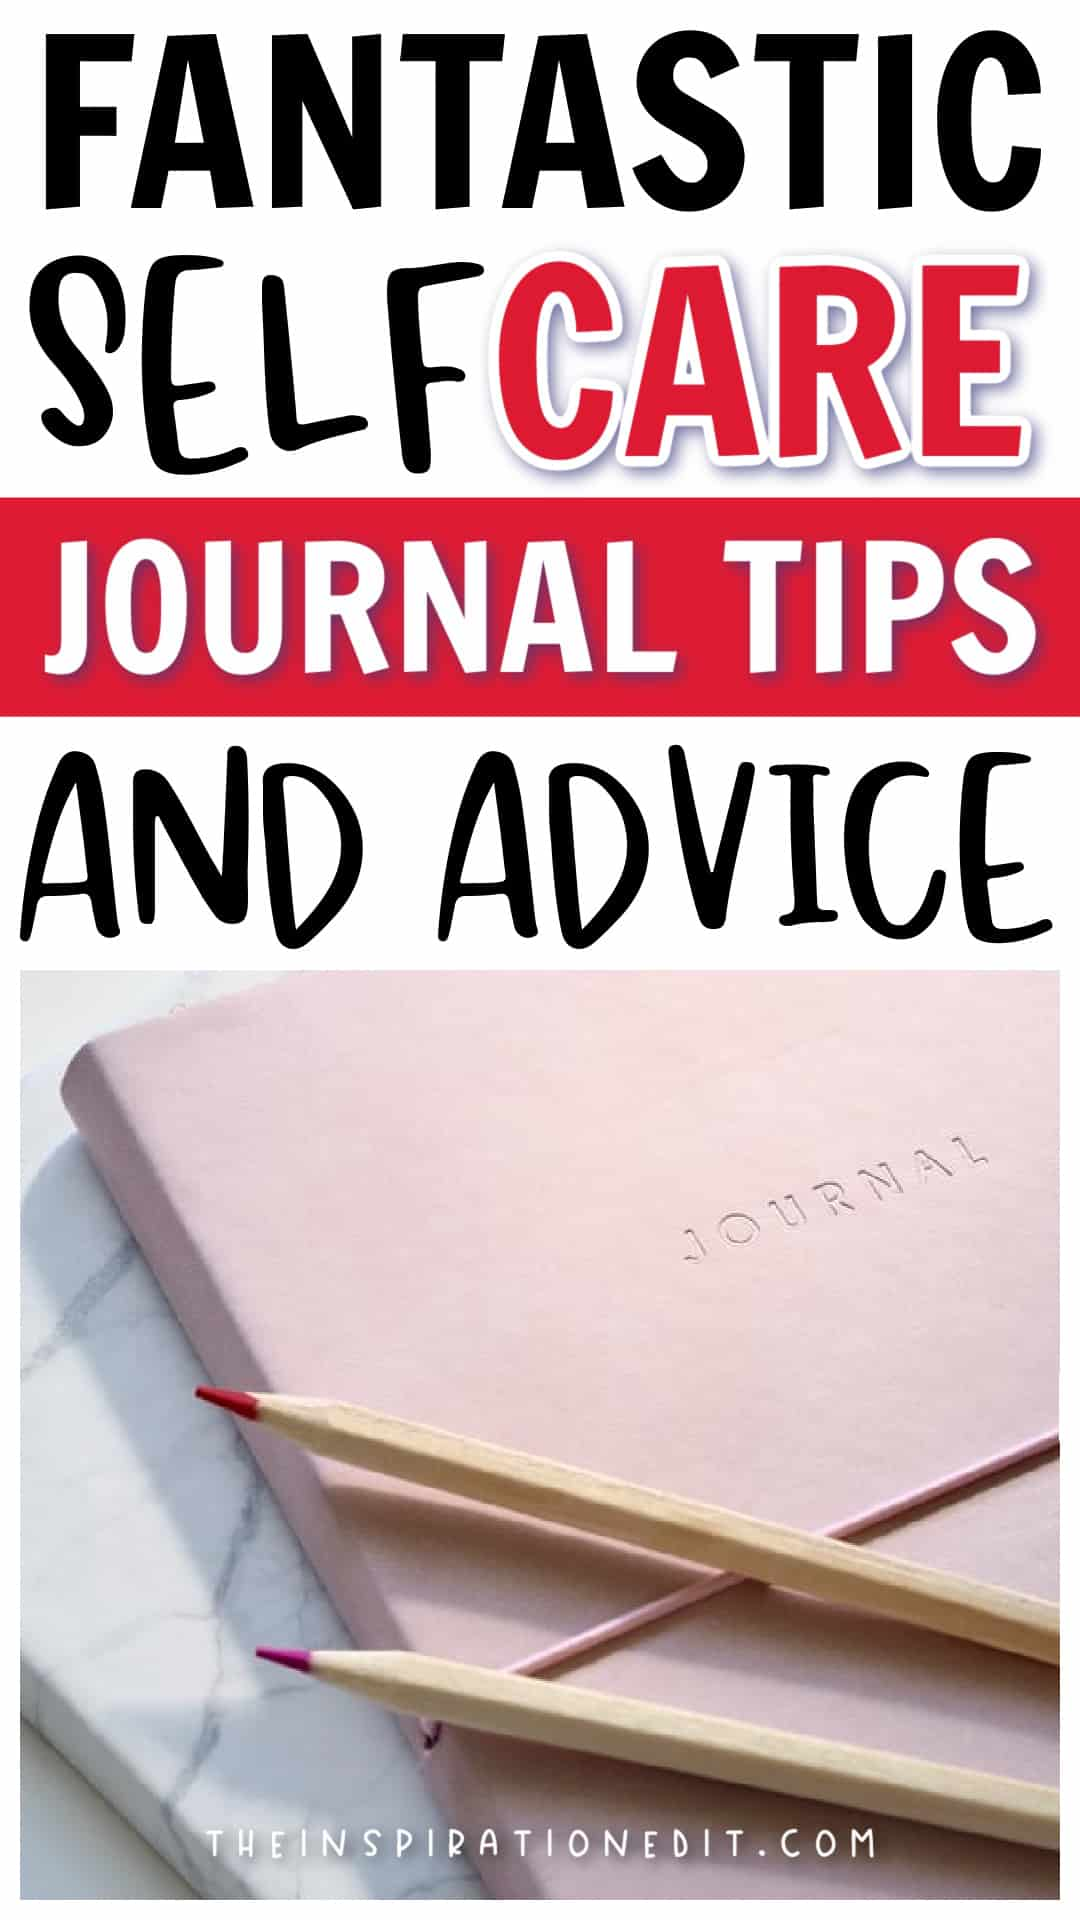 Self care journal tips and advice